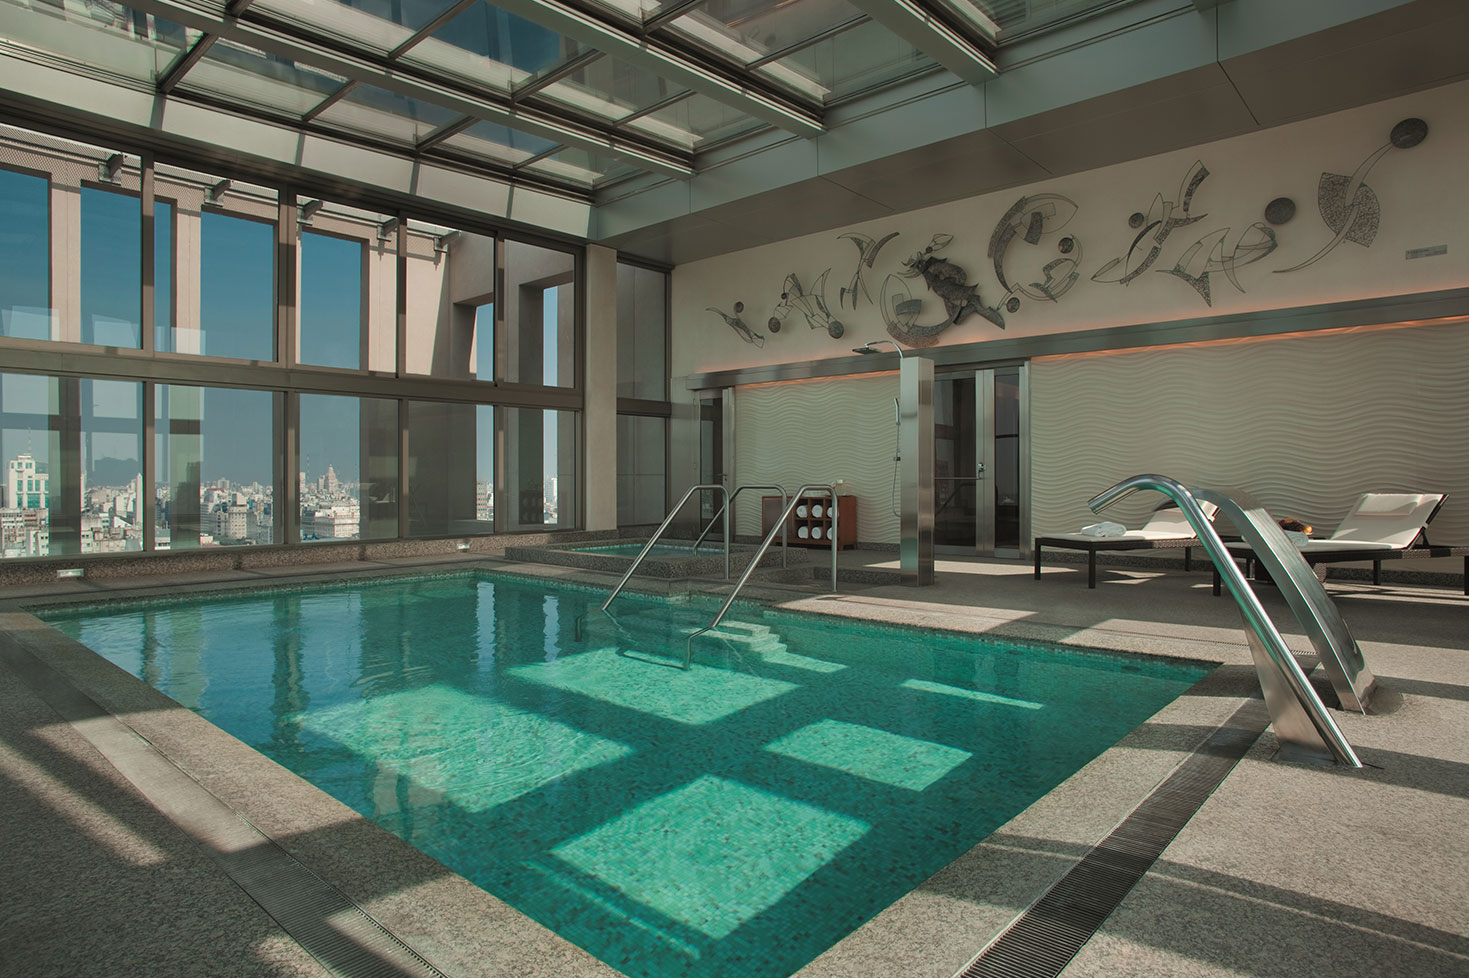 Hotel pool with people  Alvear Art Hotel, Luxury Hotel in Buenos Aires Downtown